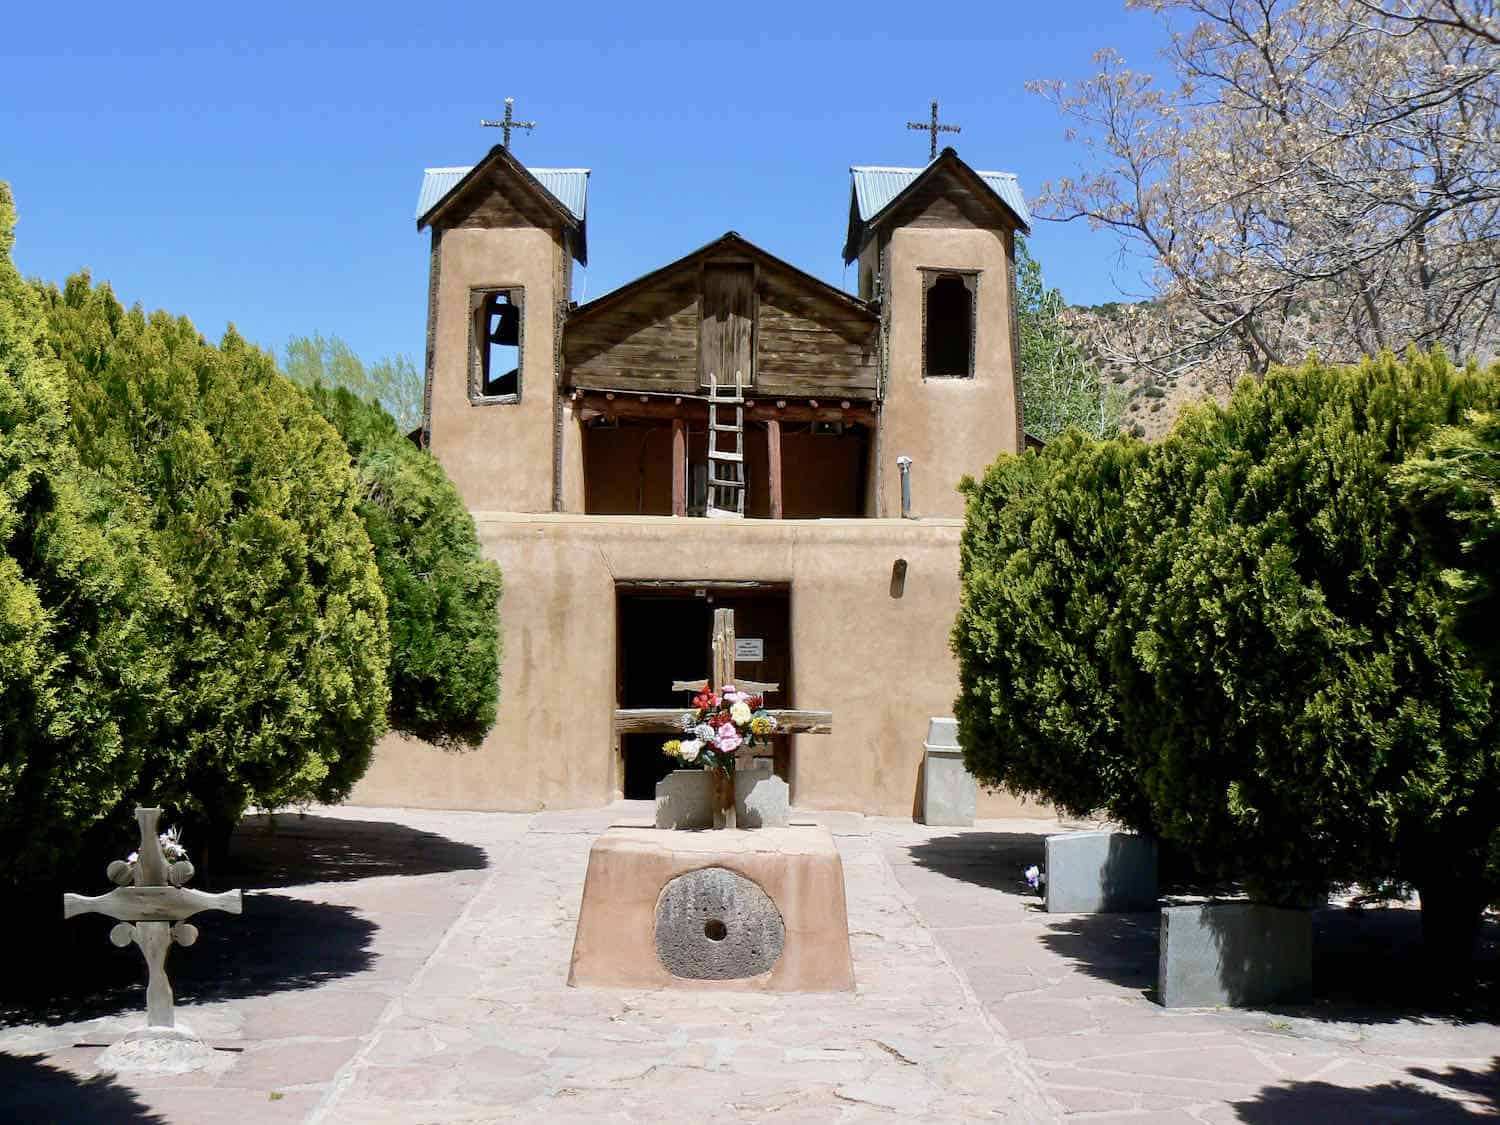 An adobe church in the Spanish Colonia style flanked by a row of evergreen trees on each side.